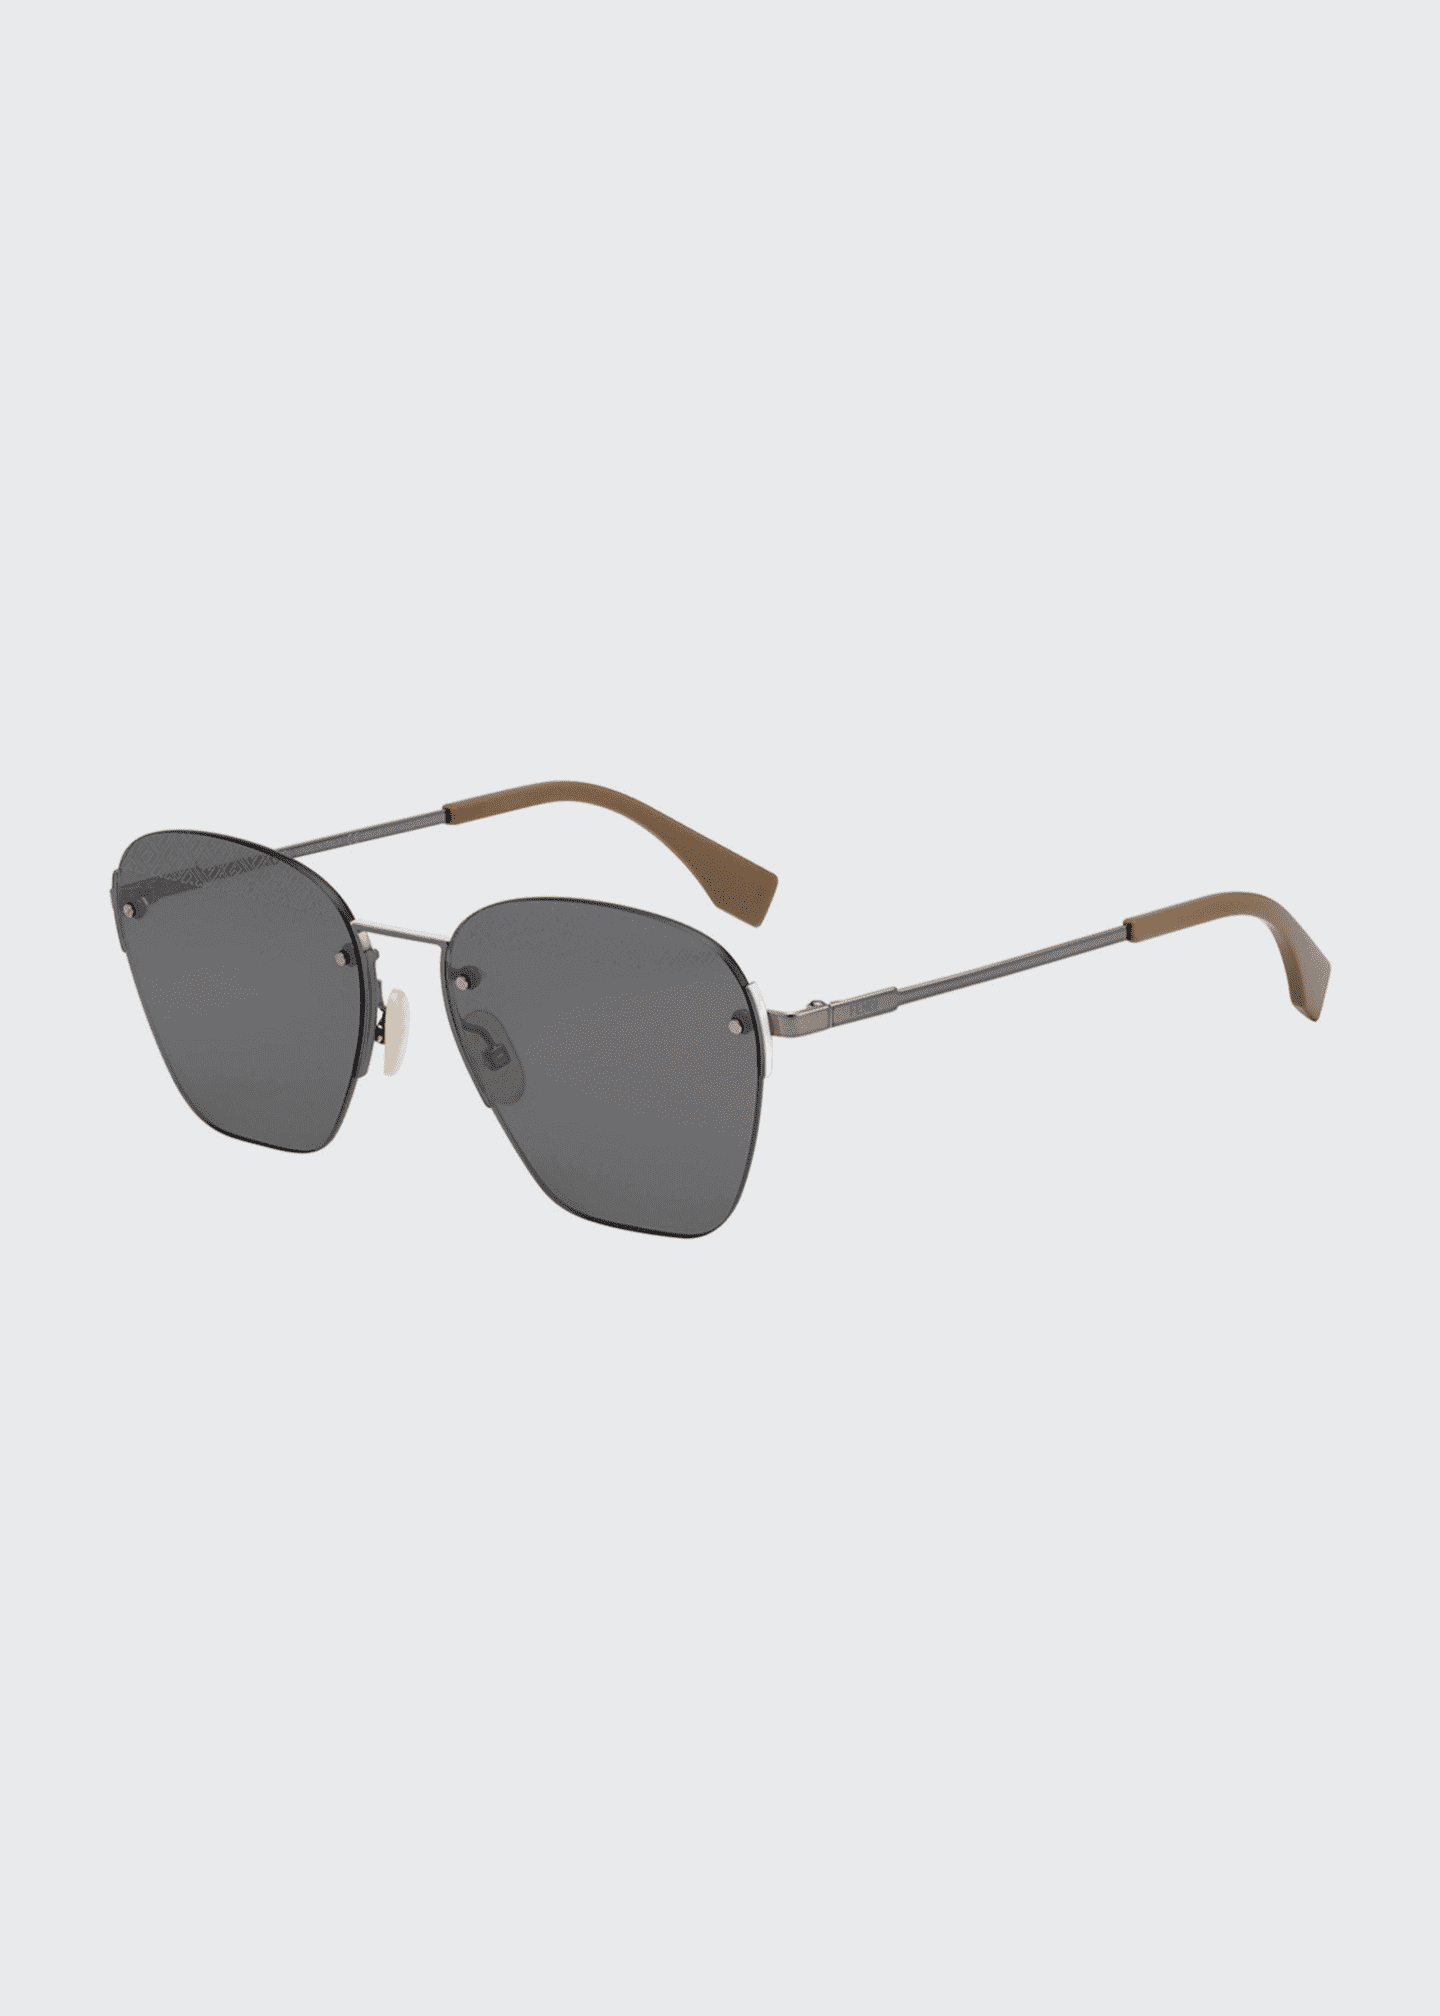 Image 1 of 1: Men's Rimless Geometric Metal Sunglasses